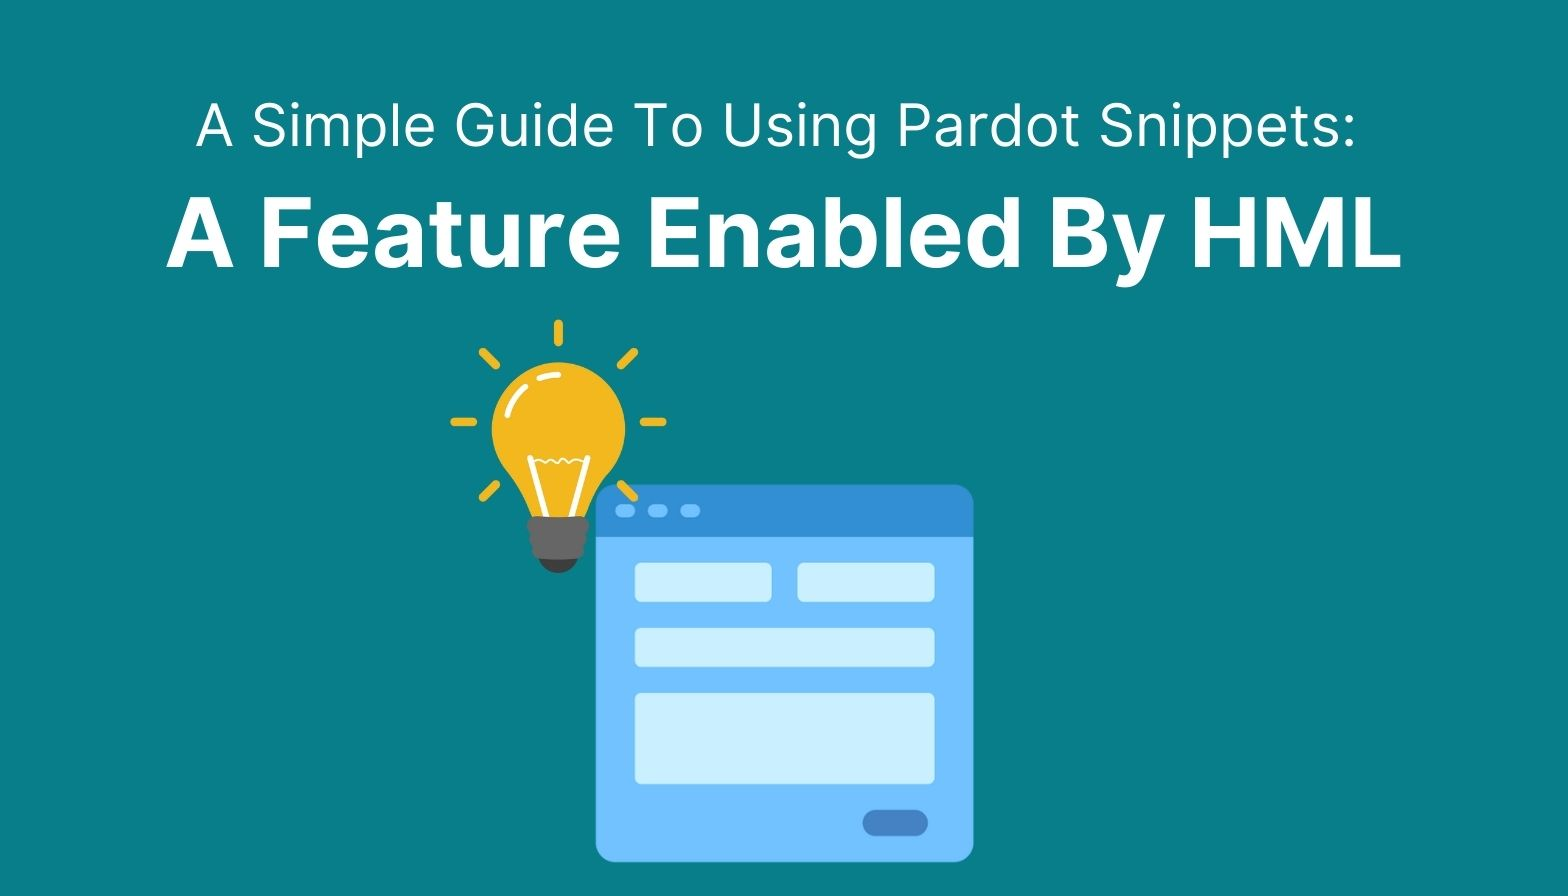 Feature image: A simple guide to using Pardot snippets - A feature enabled by HTML